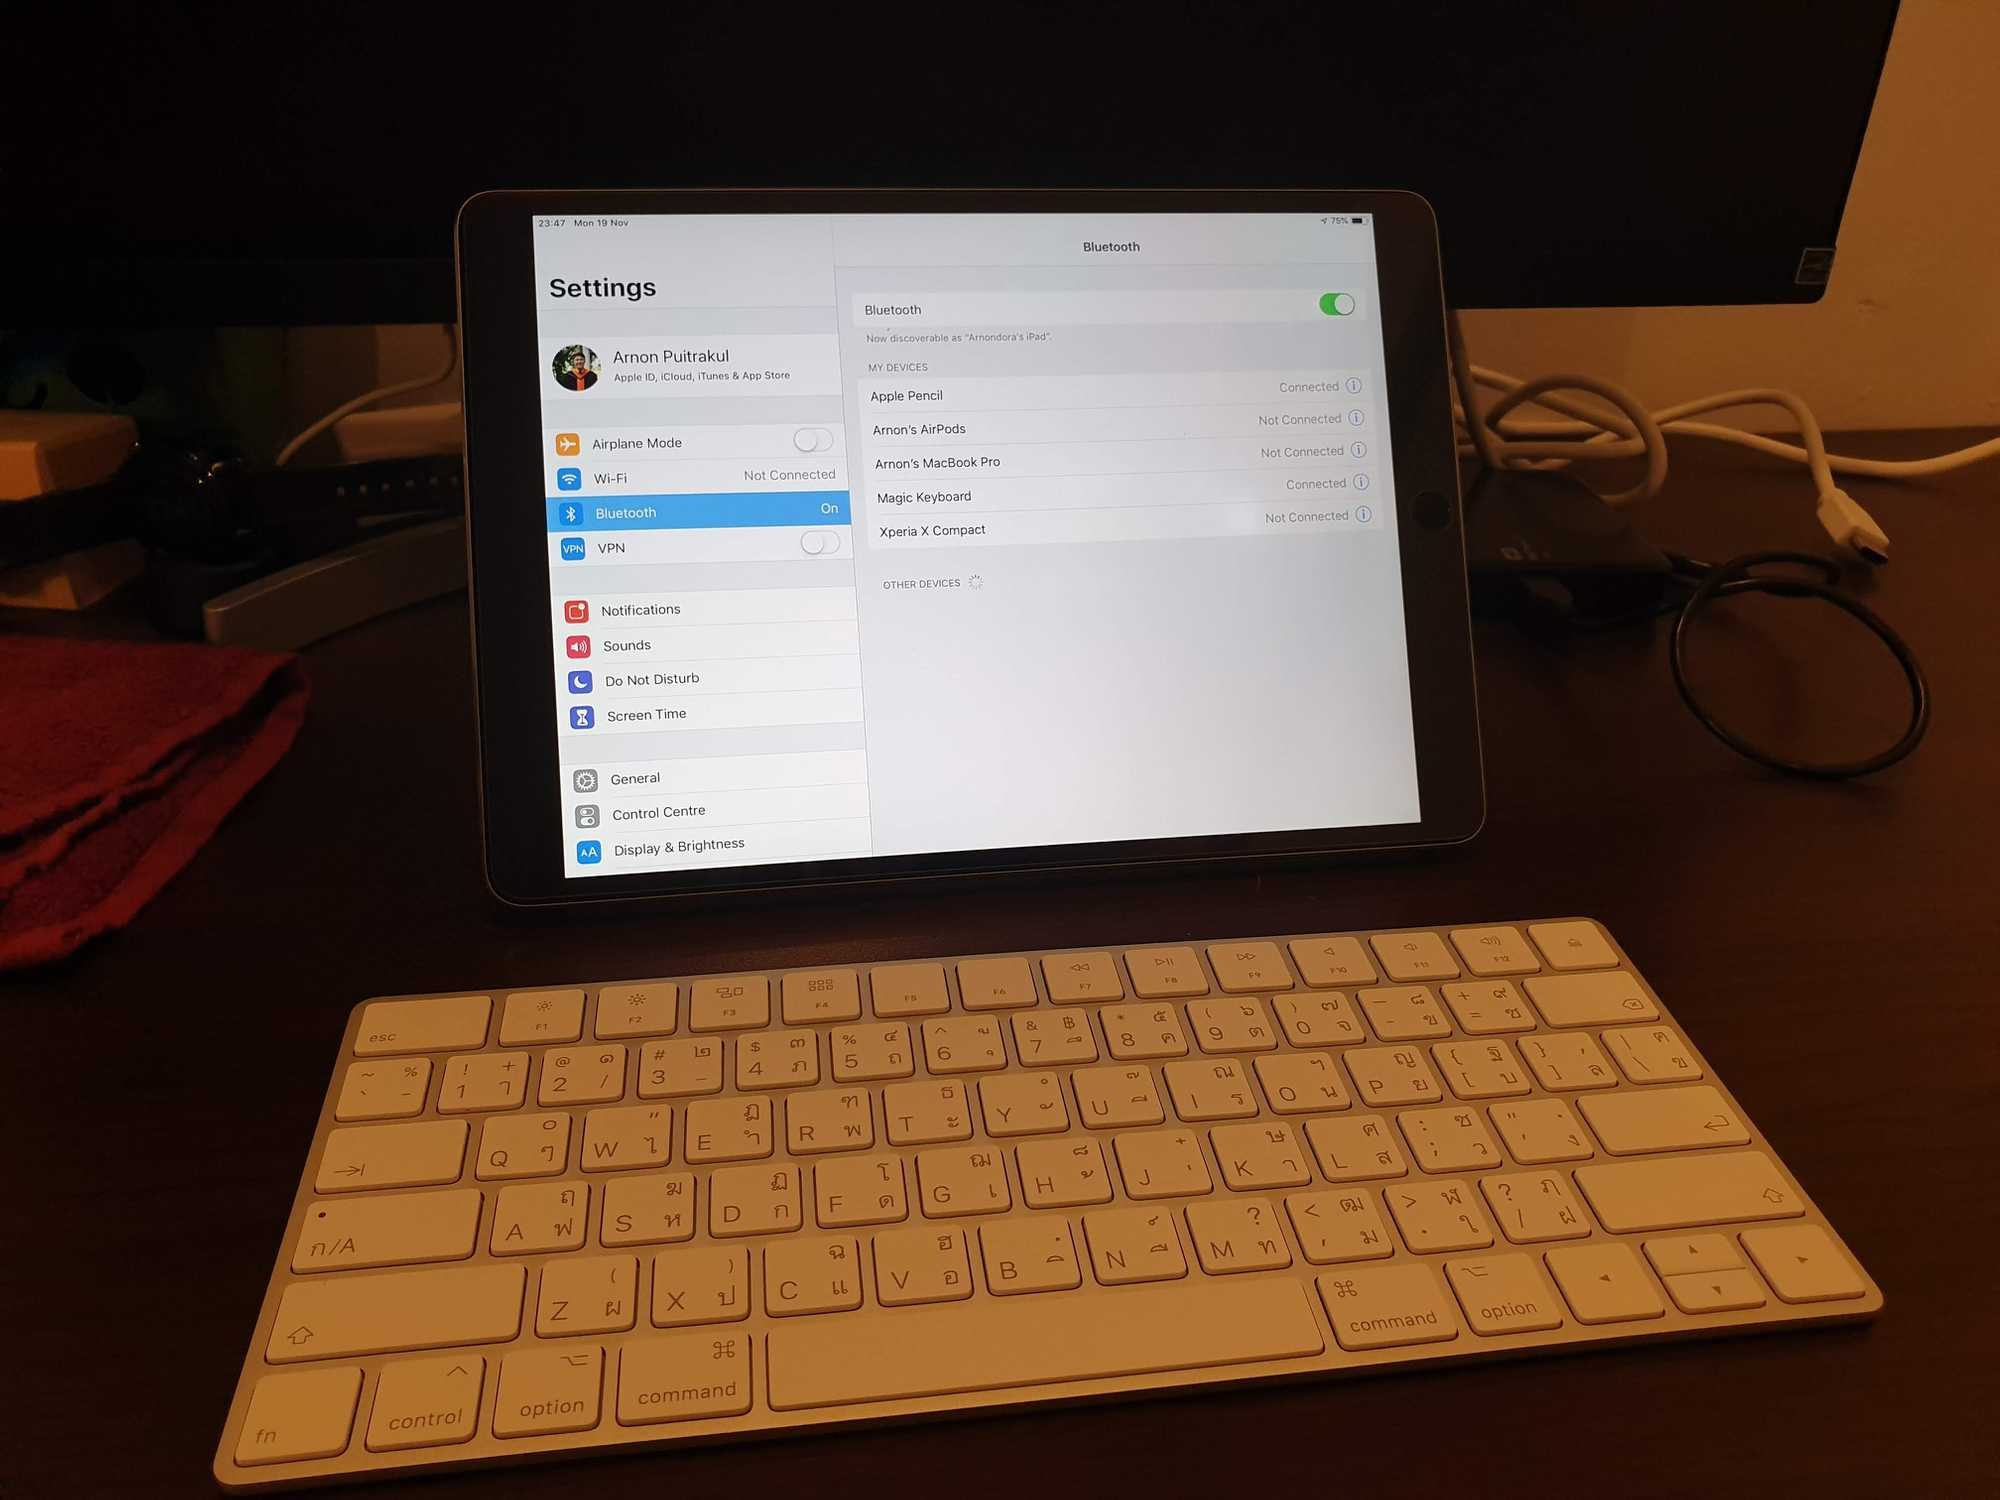 Apple Smart Keyboard with iPad Pro 10.5 inch